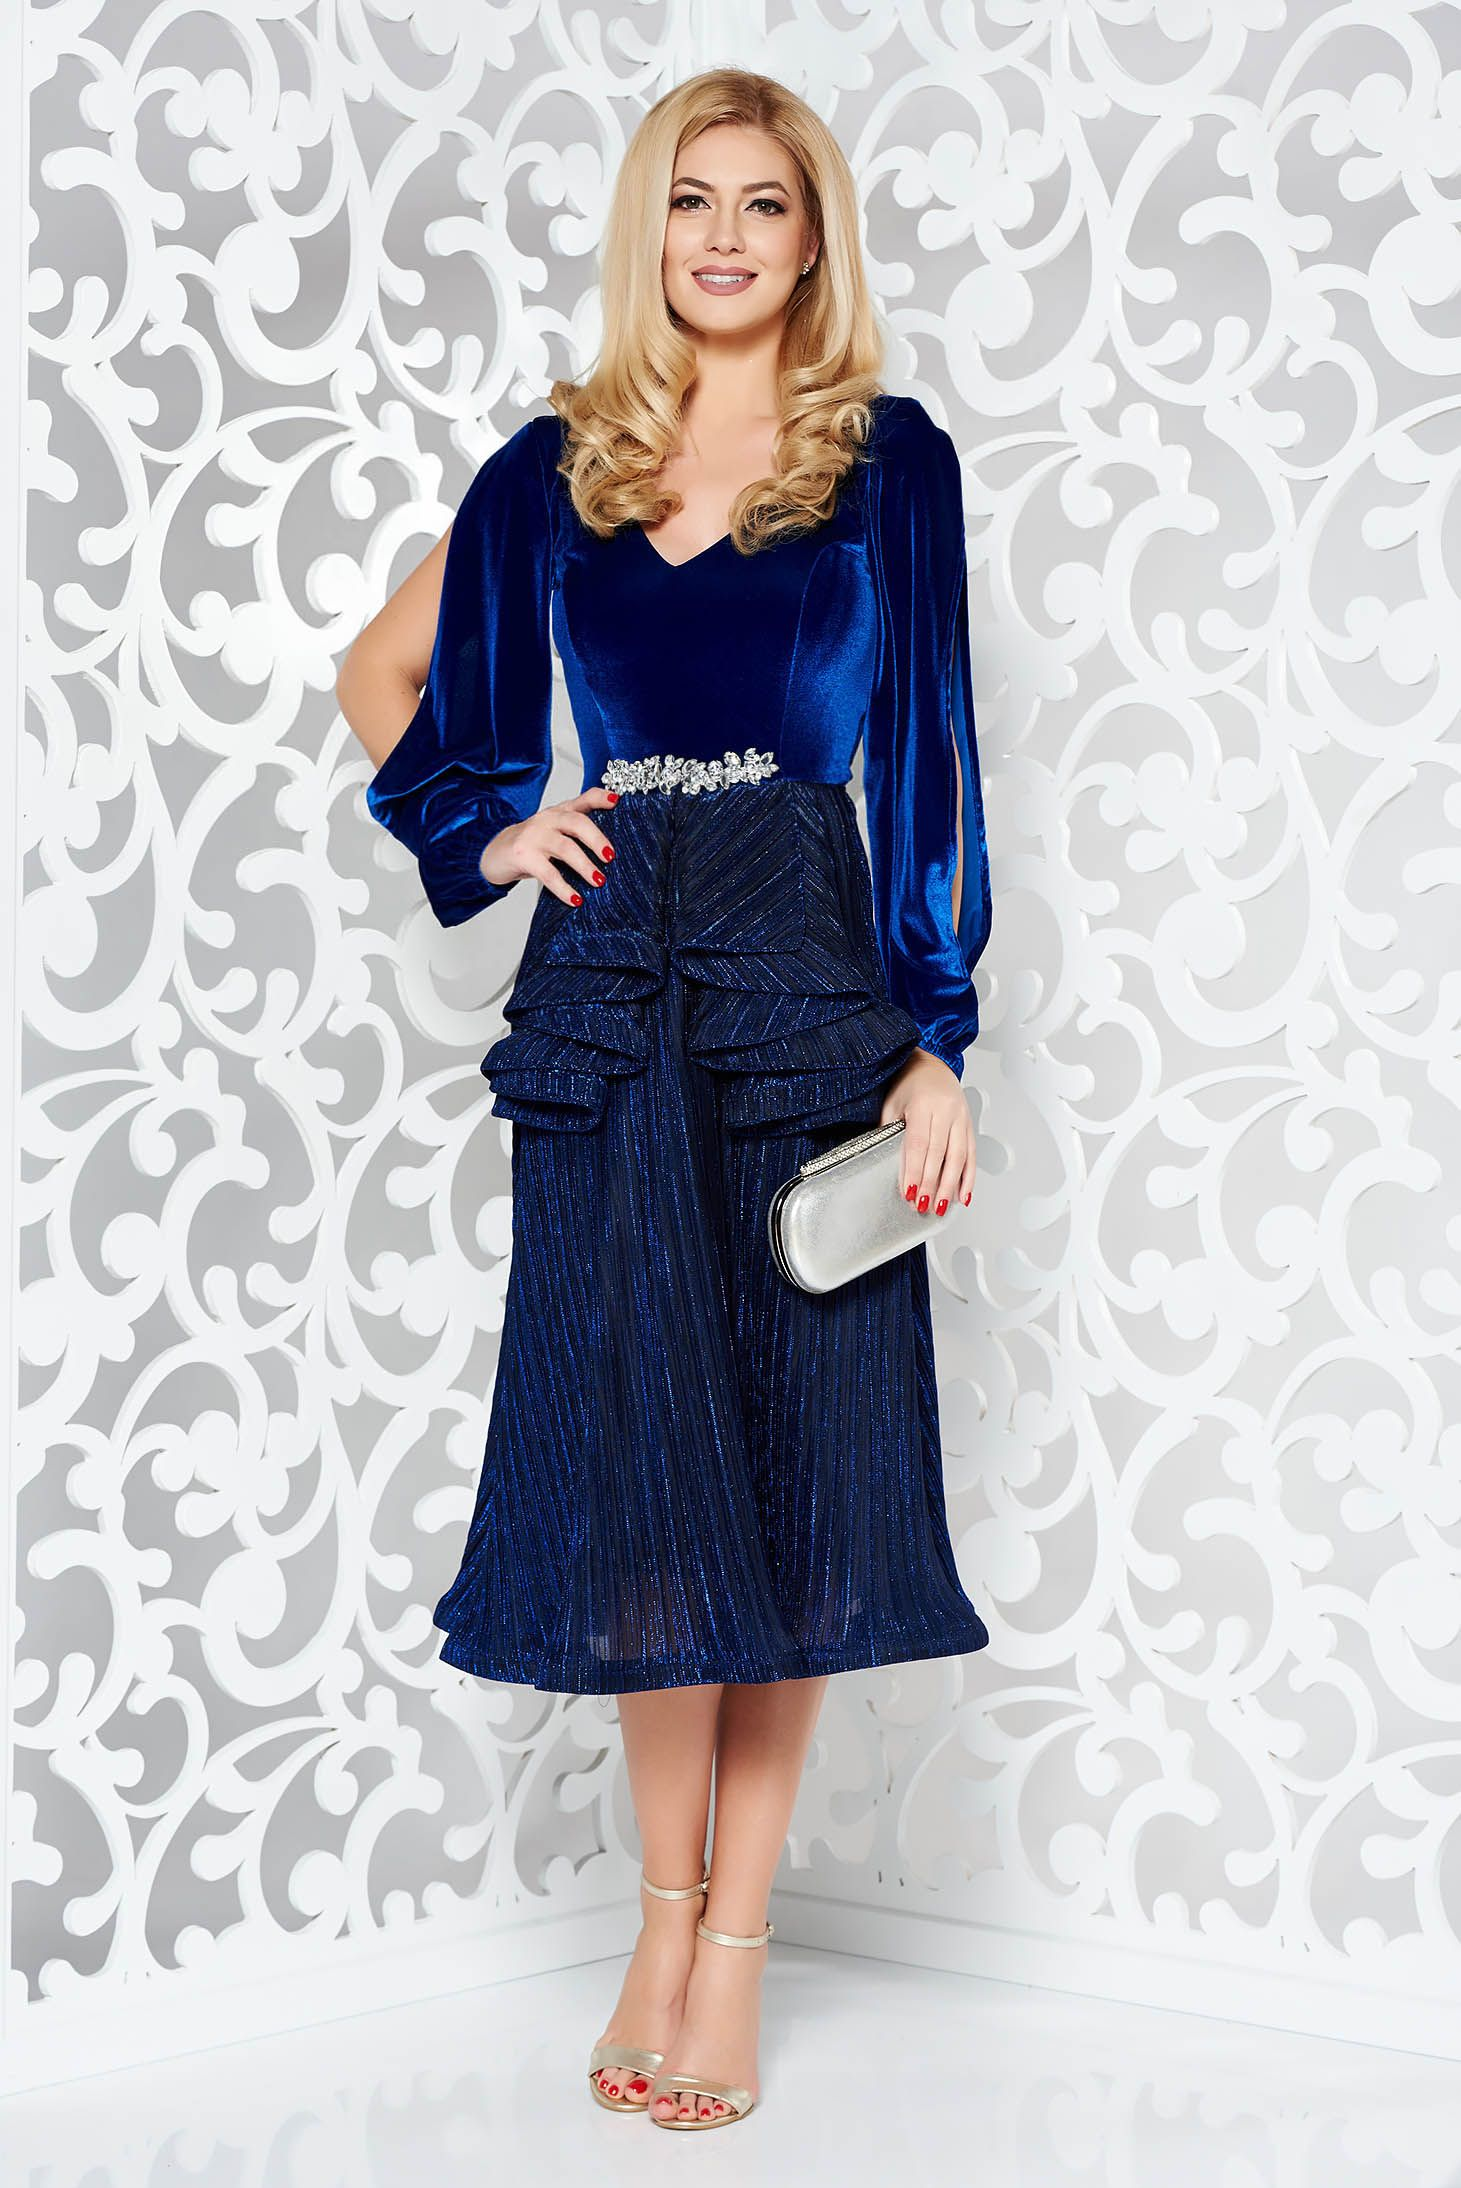 b2465ef196a1 StarShinerS Ii-XXXX Blue Dress, embellished accessories, accessorized with  tied waistband, inside lining, flaring cut,